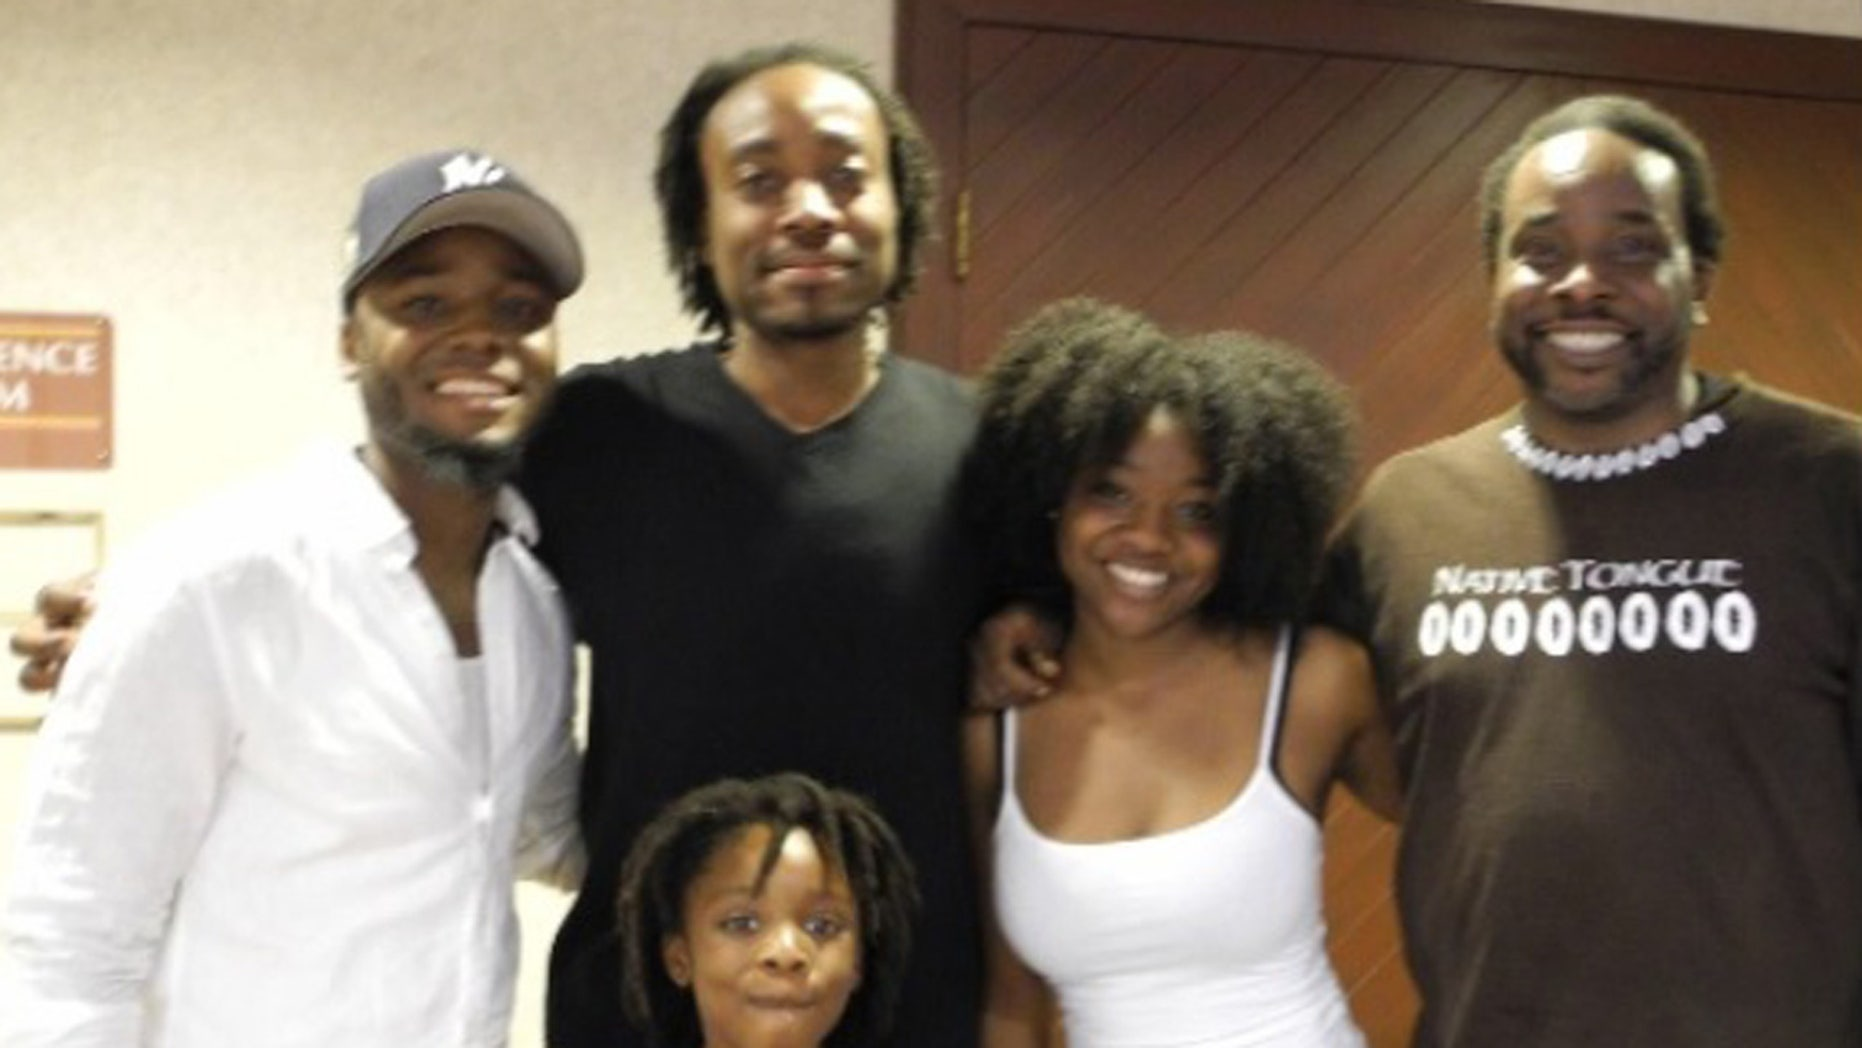 Okera Ras (far right) and son Duro Akil (second from the left) with family members.